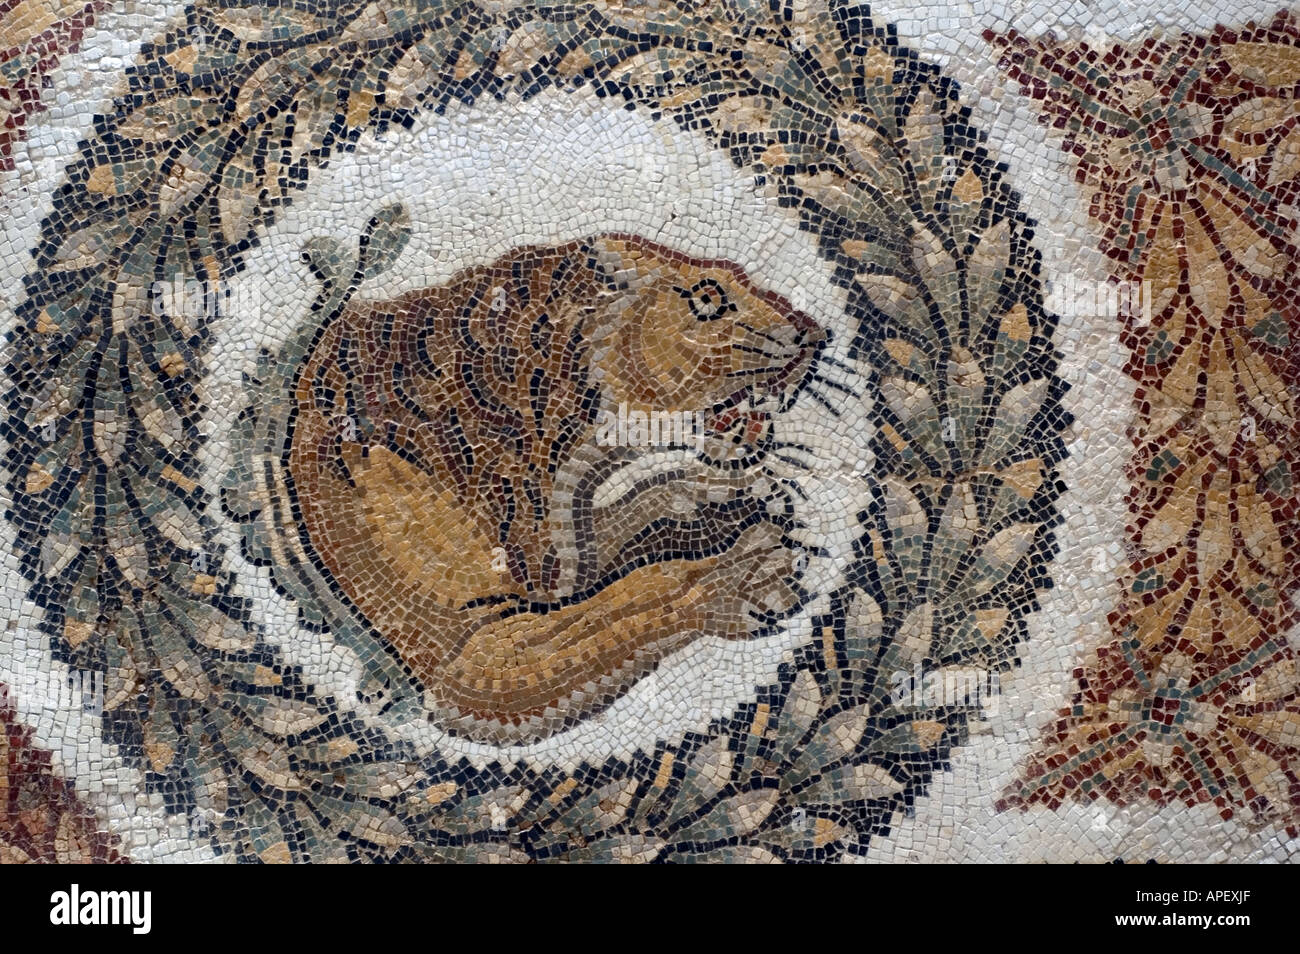 Art works in the museum of Bardo, in Tunis, Tunisia. Here is a a close-up photo of a Roman  mosaic showing a lion. Stock Photo